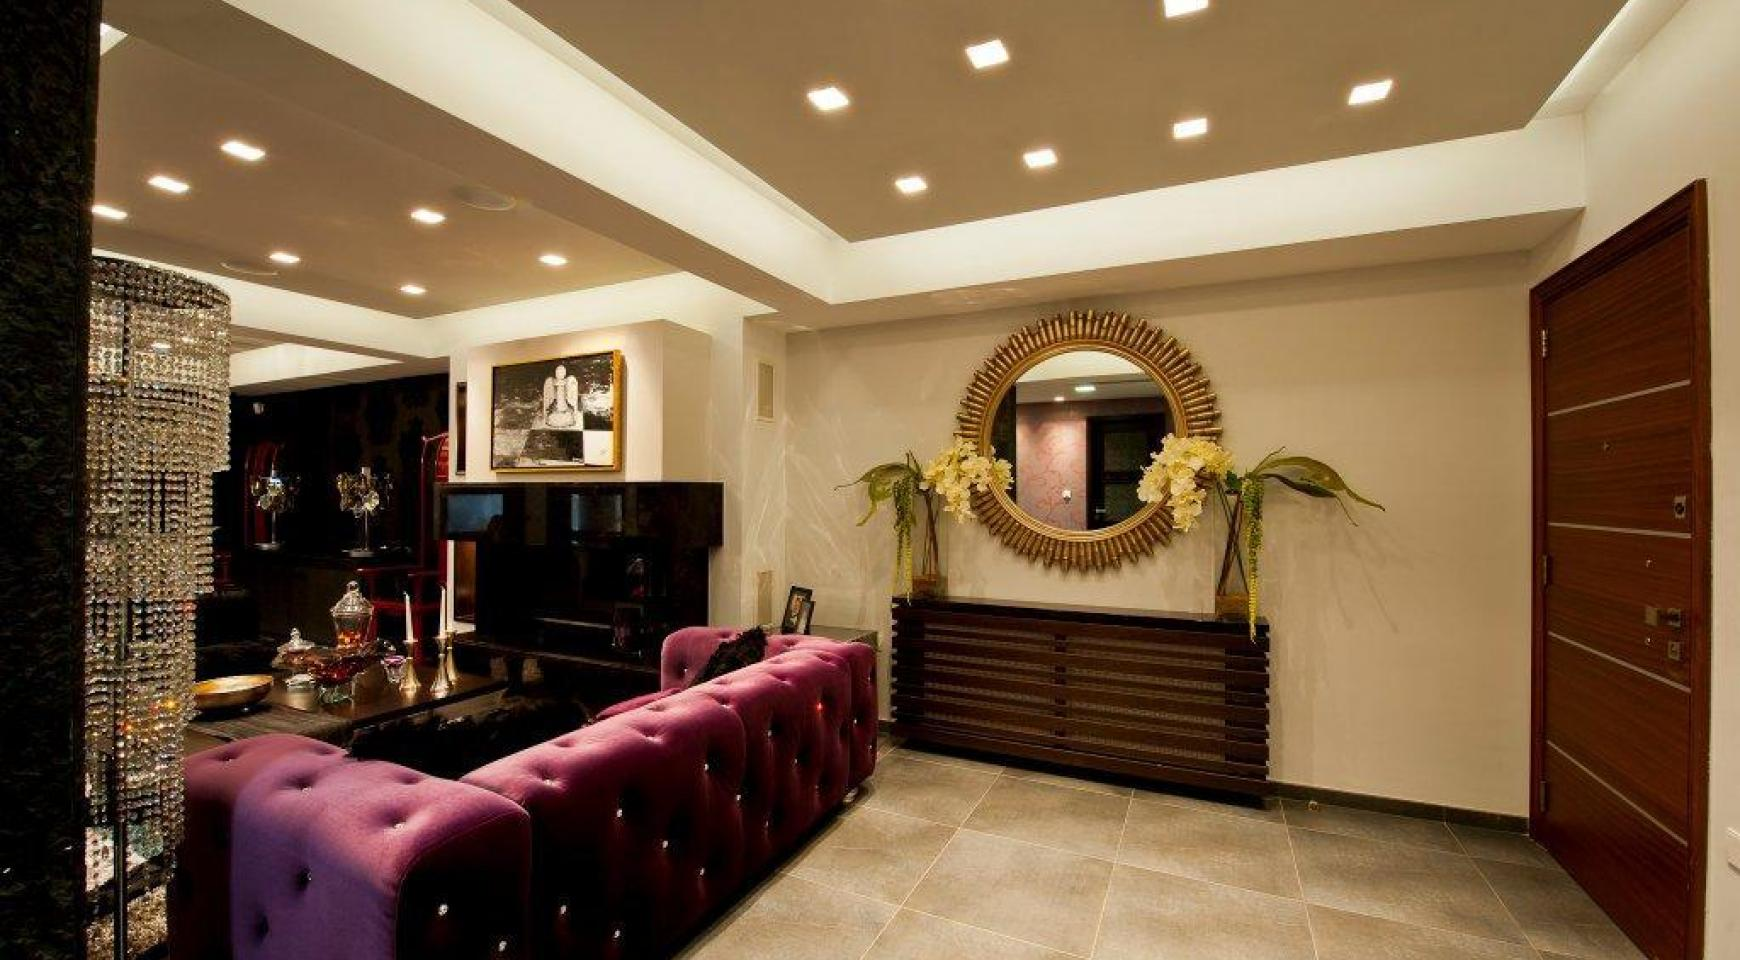 Exclusive 3 Bedroom Penthouse in the City Centre - 4